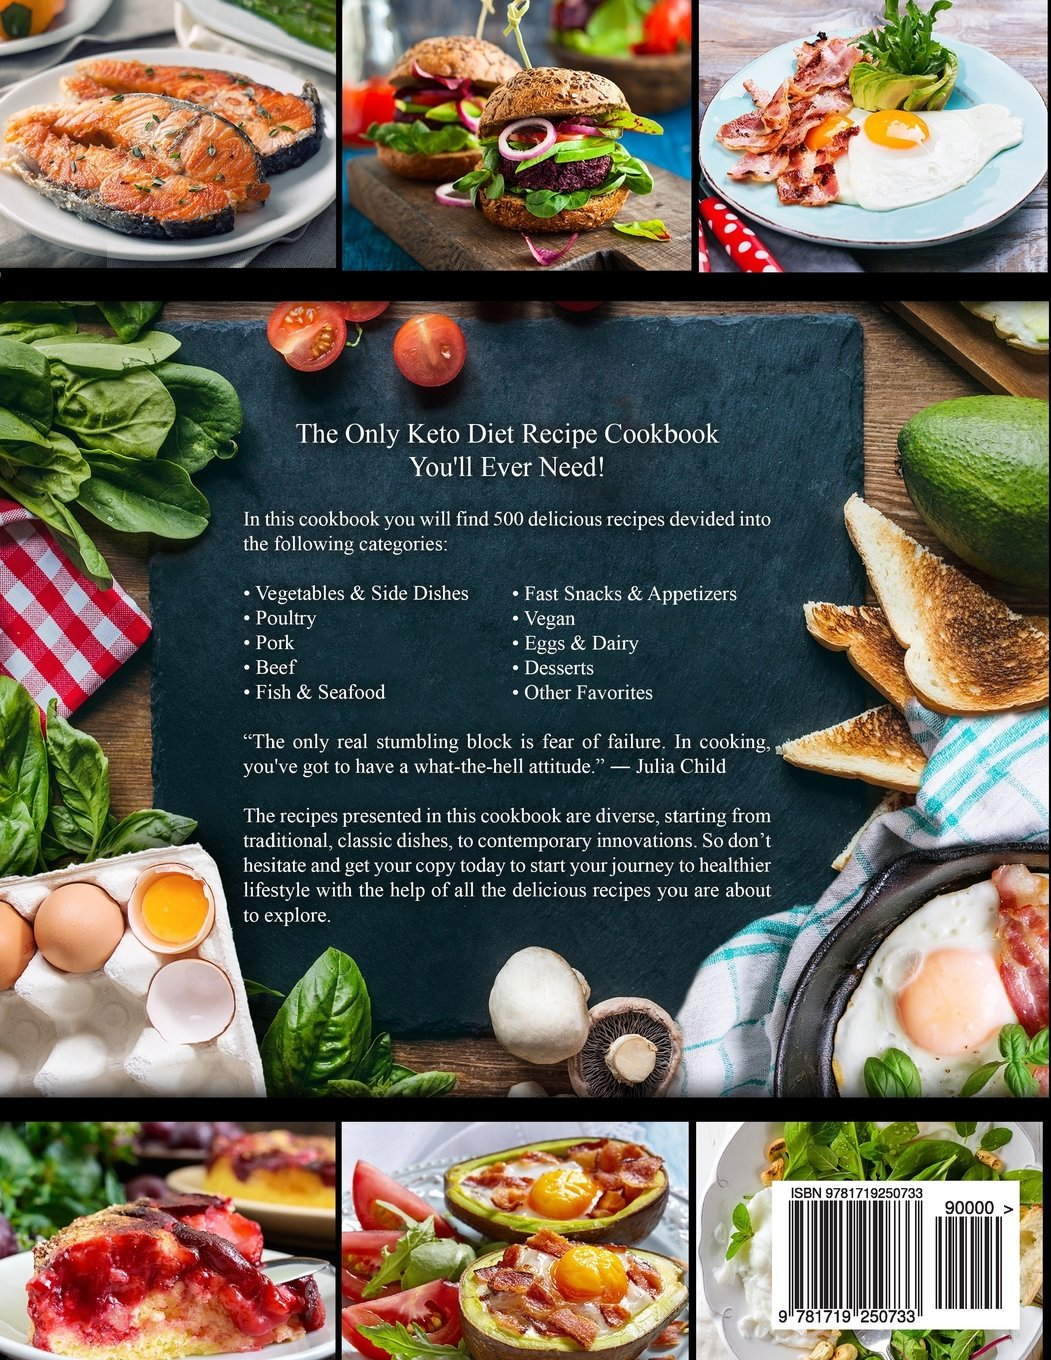 500 Keto Diet Recipes Cookbook: Ketogenic Food for Everyday - Vegan, Pork,  Eggs & Dairy, Beef, Desserts and More.: Jamie Stewart: 9781719250733:  Amazon.com: ...